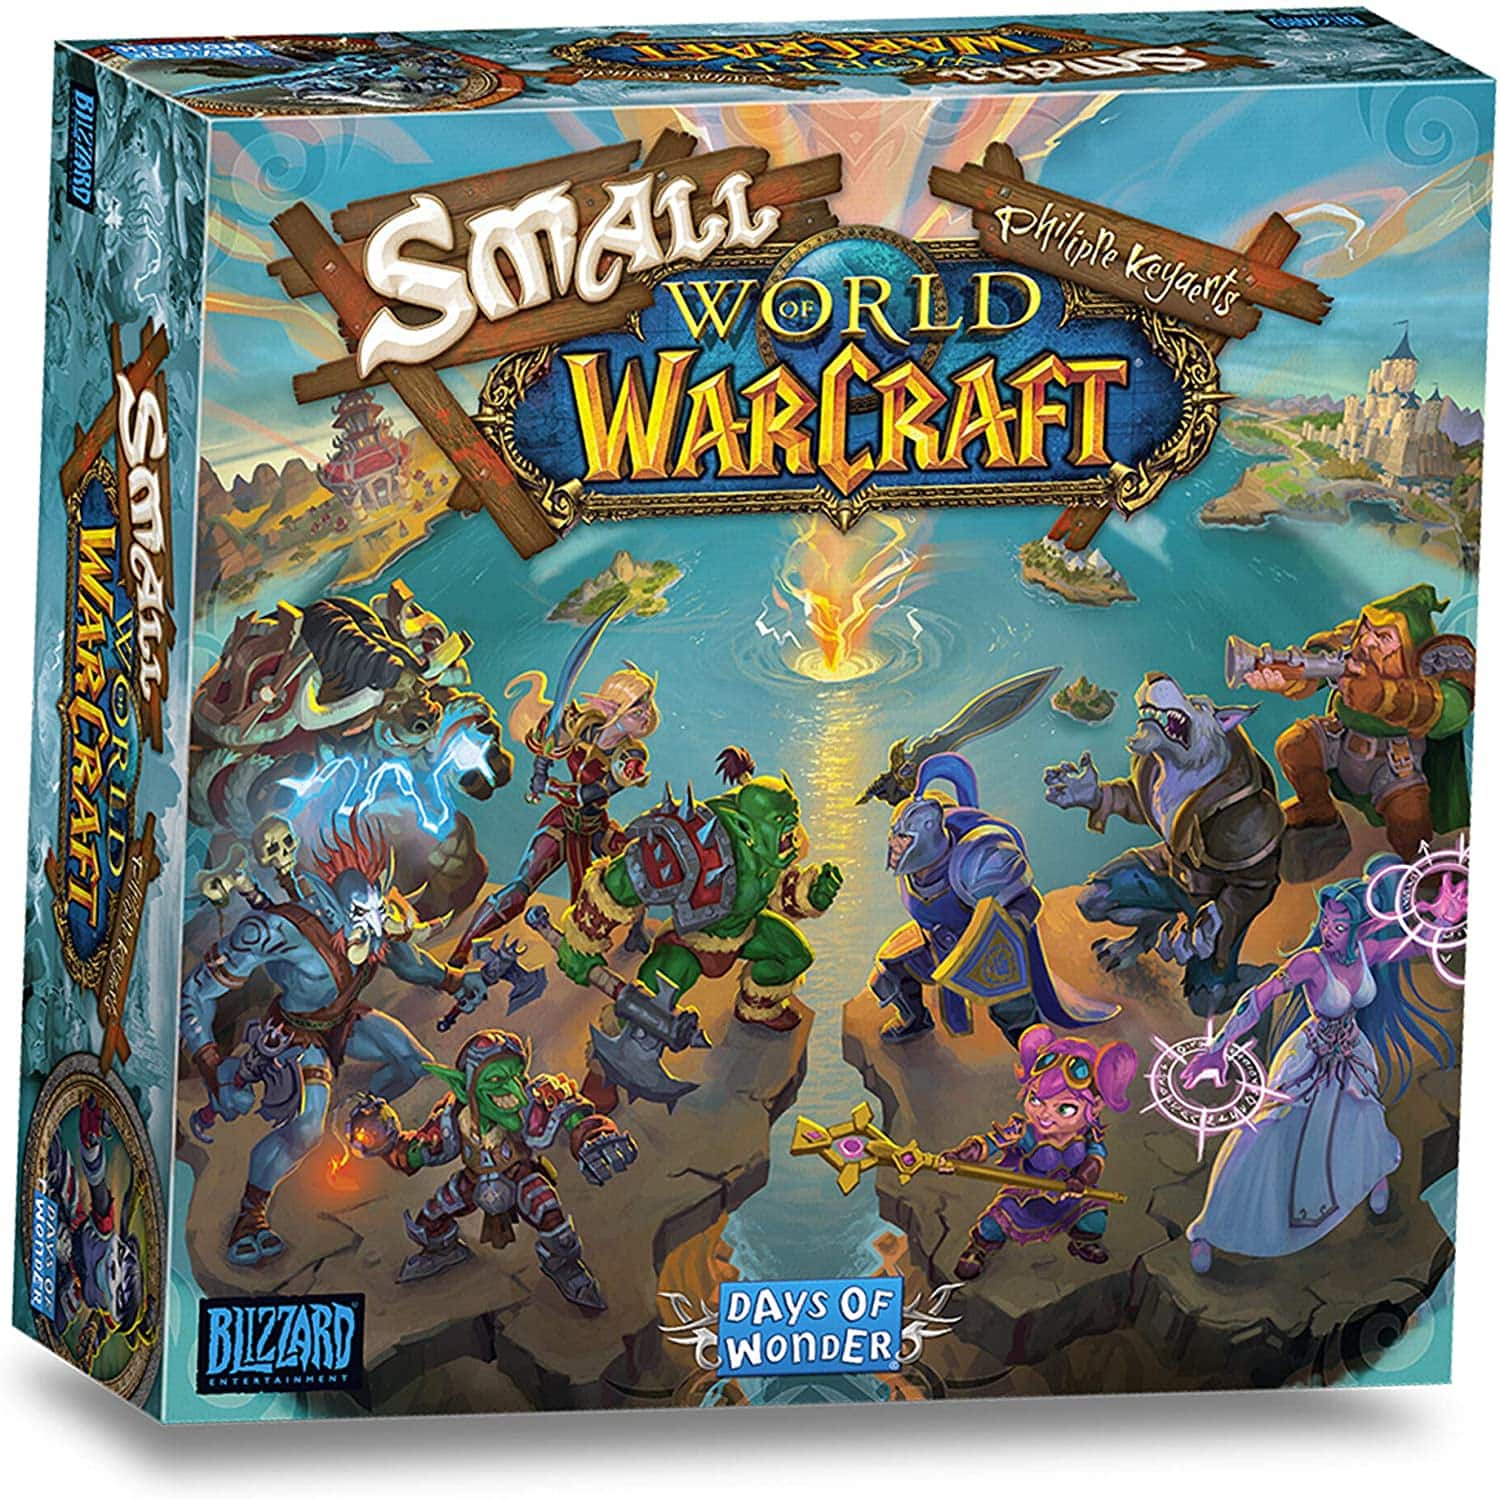 Small World of Warcraft Board Game - $28.78 at Woot